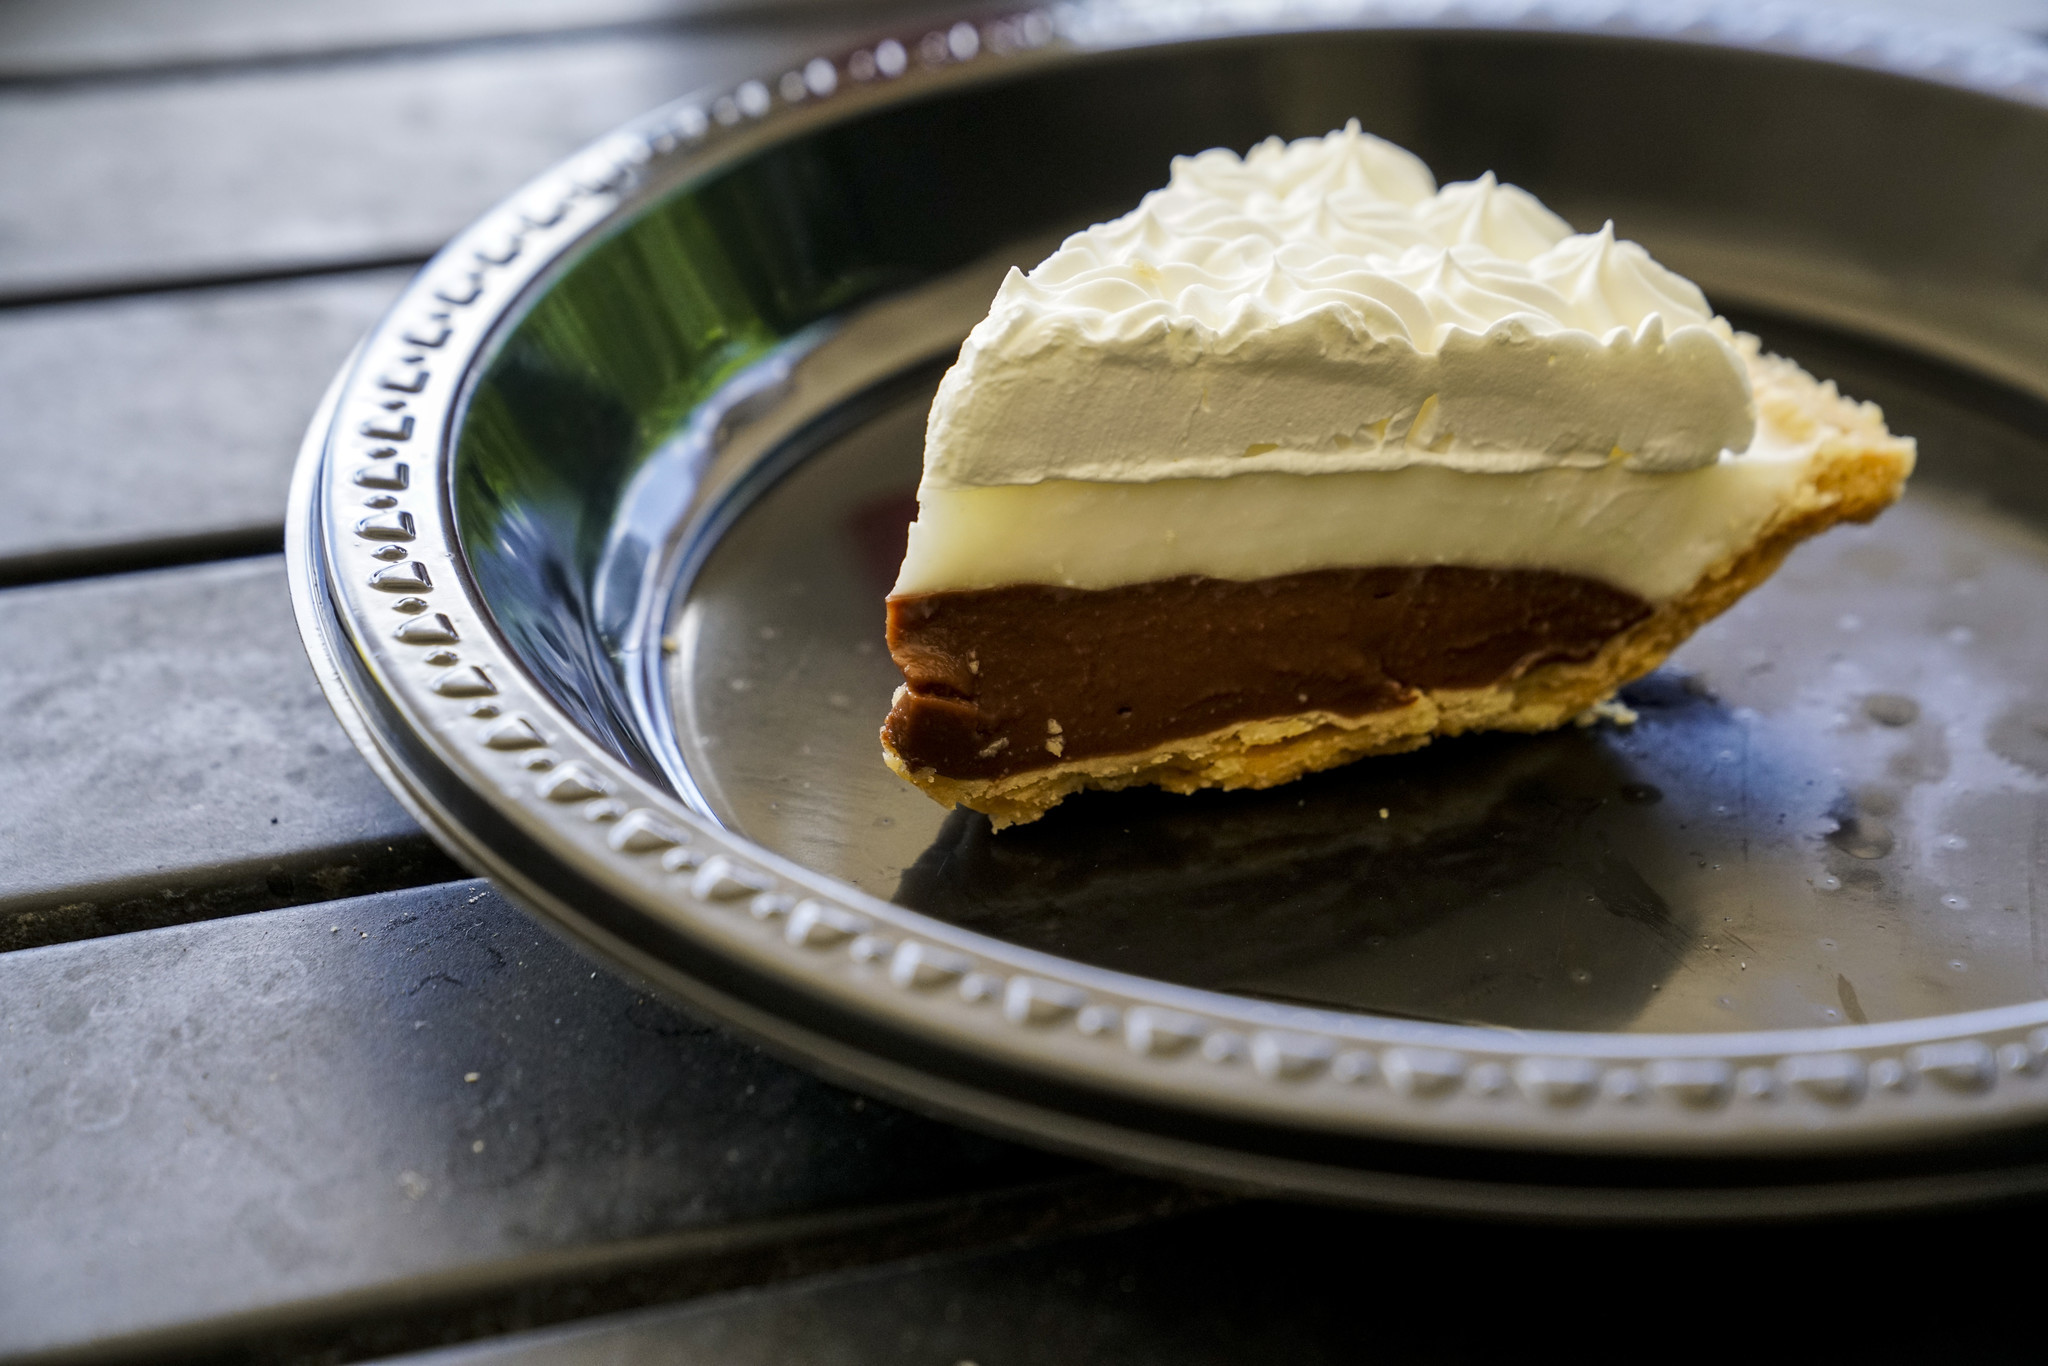 HALEIWA, HI - AUGUST 21: A slice of Chocolate Haupia Cream Pie, from Ted's Bakery, photographed on T